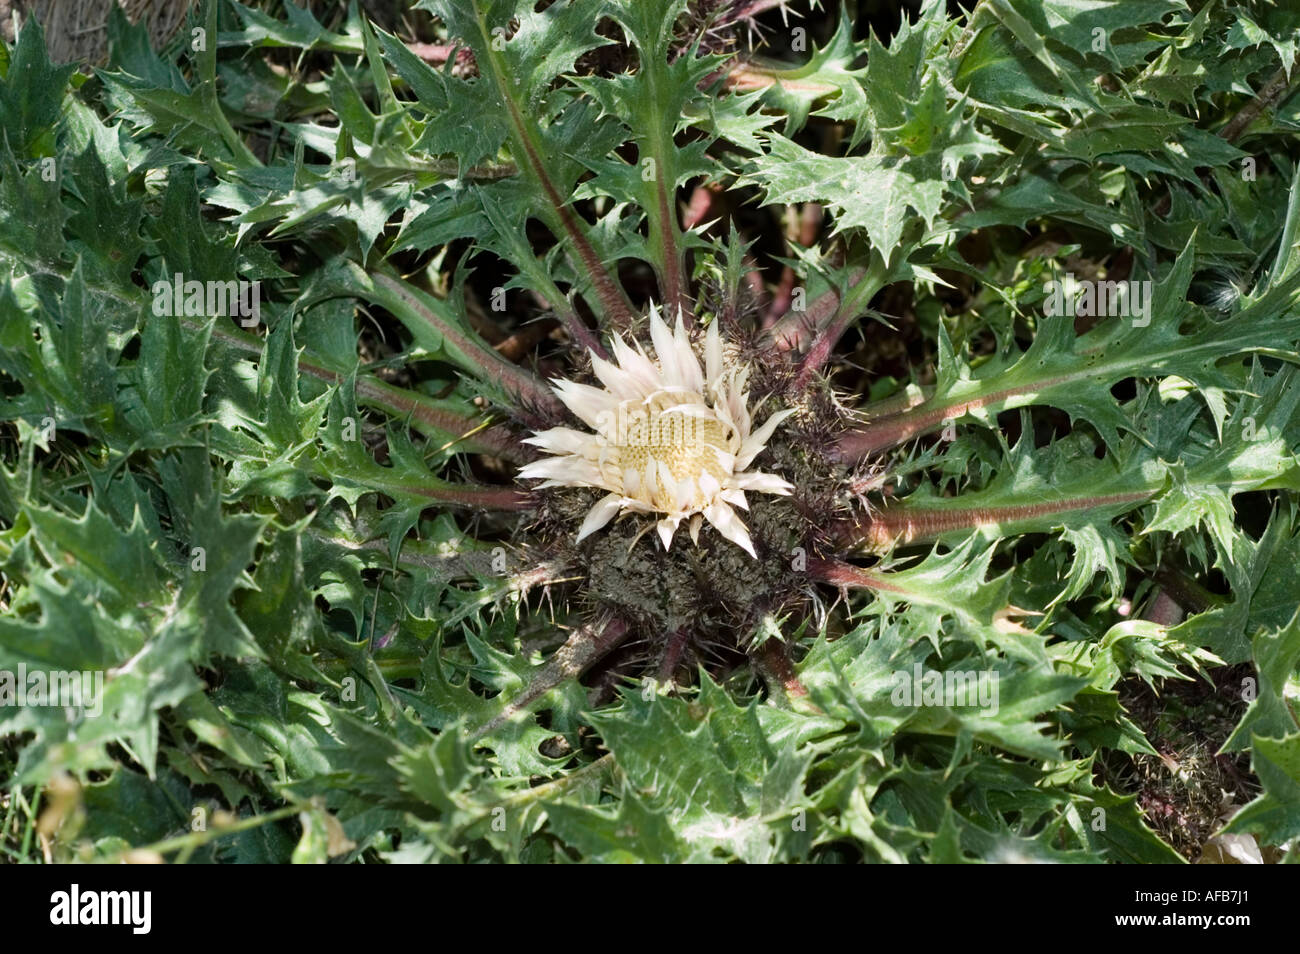 White Flower Of Stemless Carline Thistle Dwarf Carline Thistle Stock